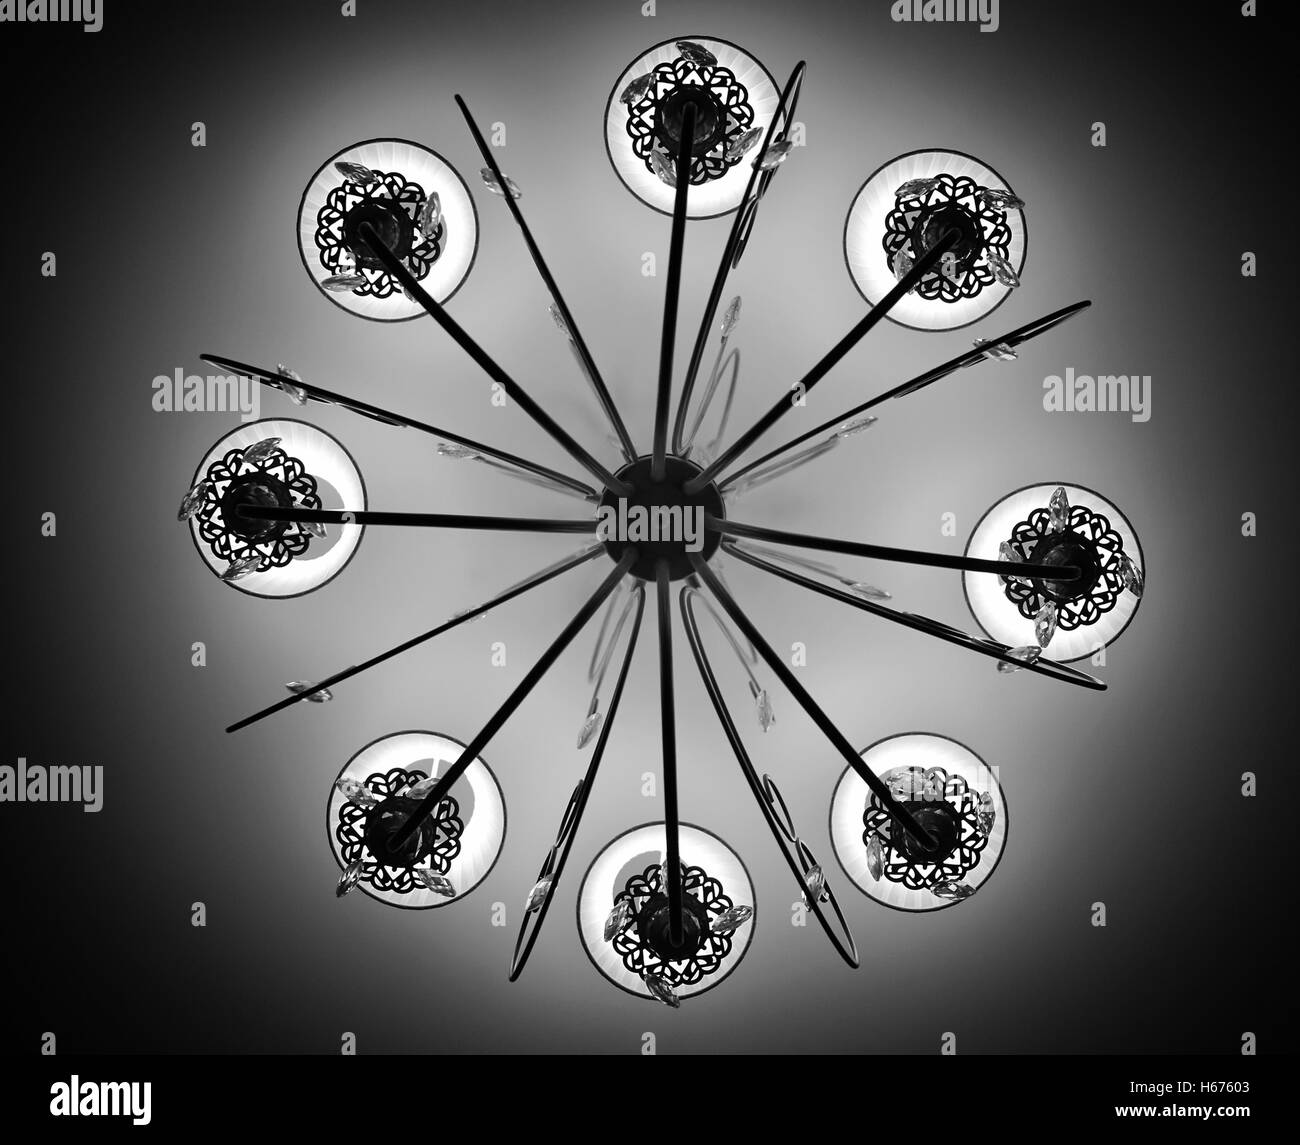 chandelier on the ceiling monochrome - Stock Image